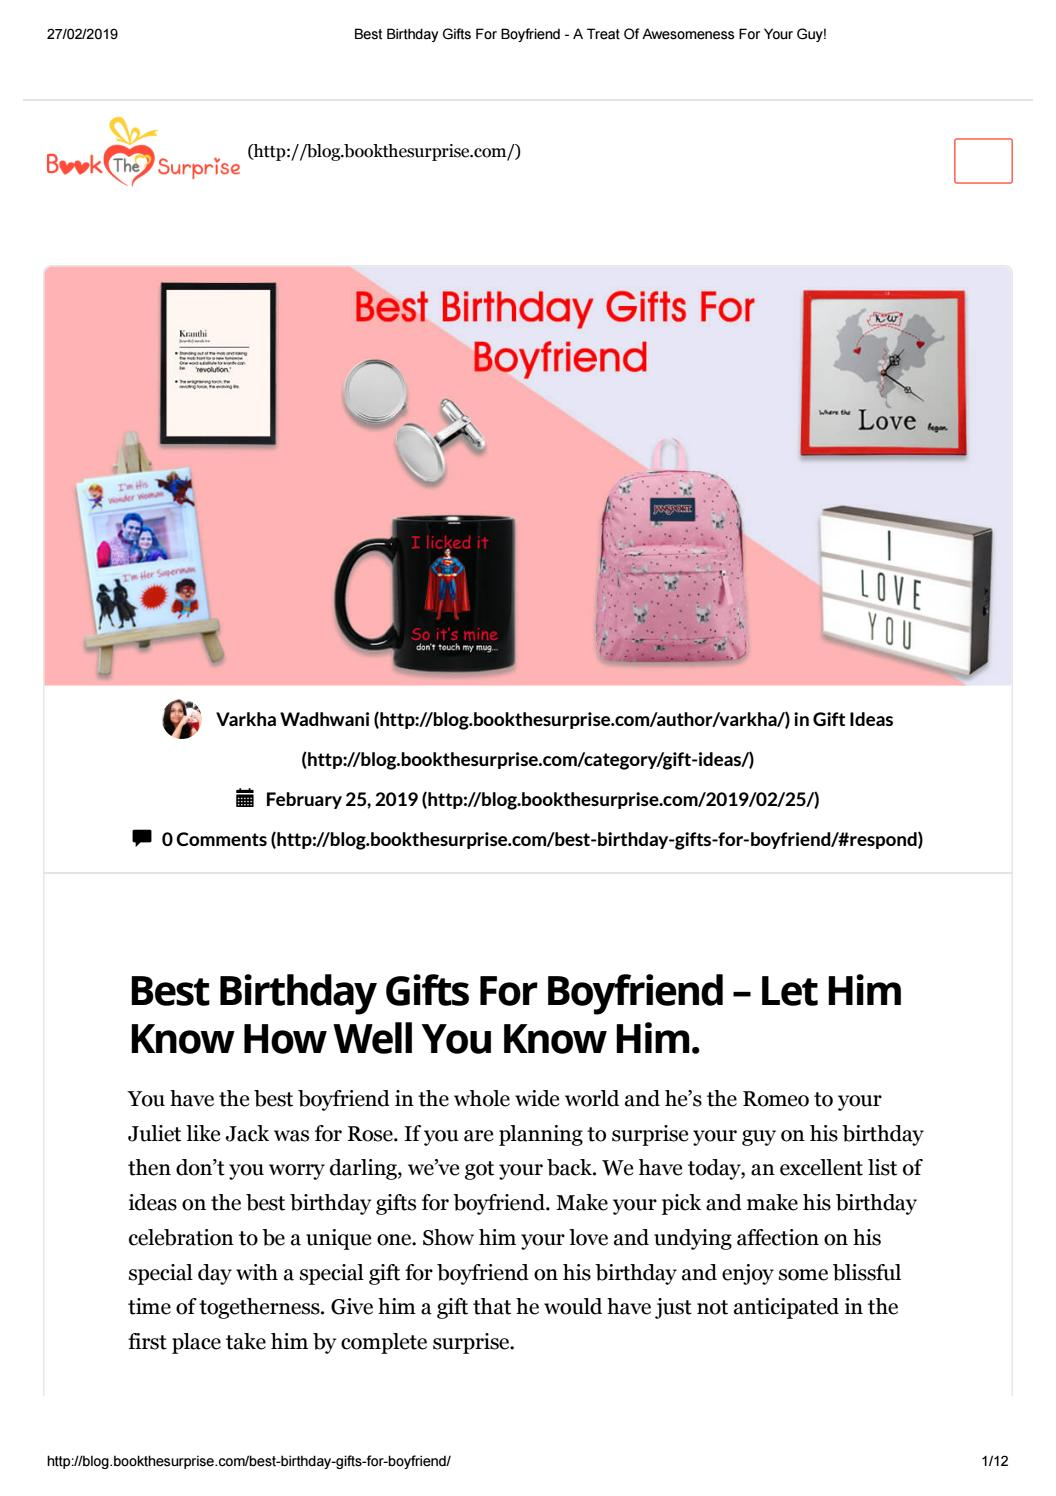 Best Birthday Gifts For Boyfriend A Treat Of Awesomeness For